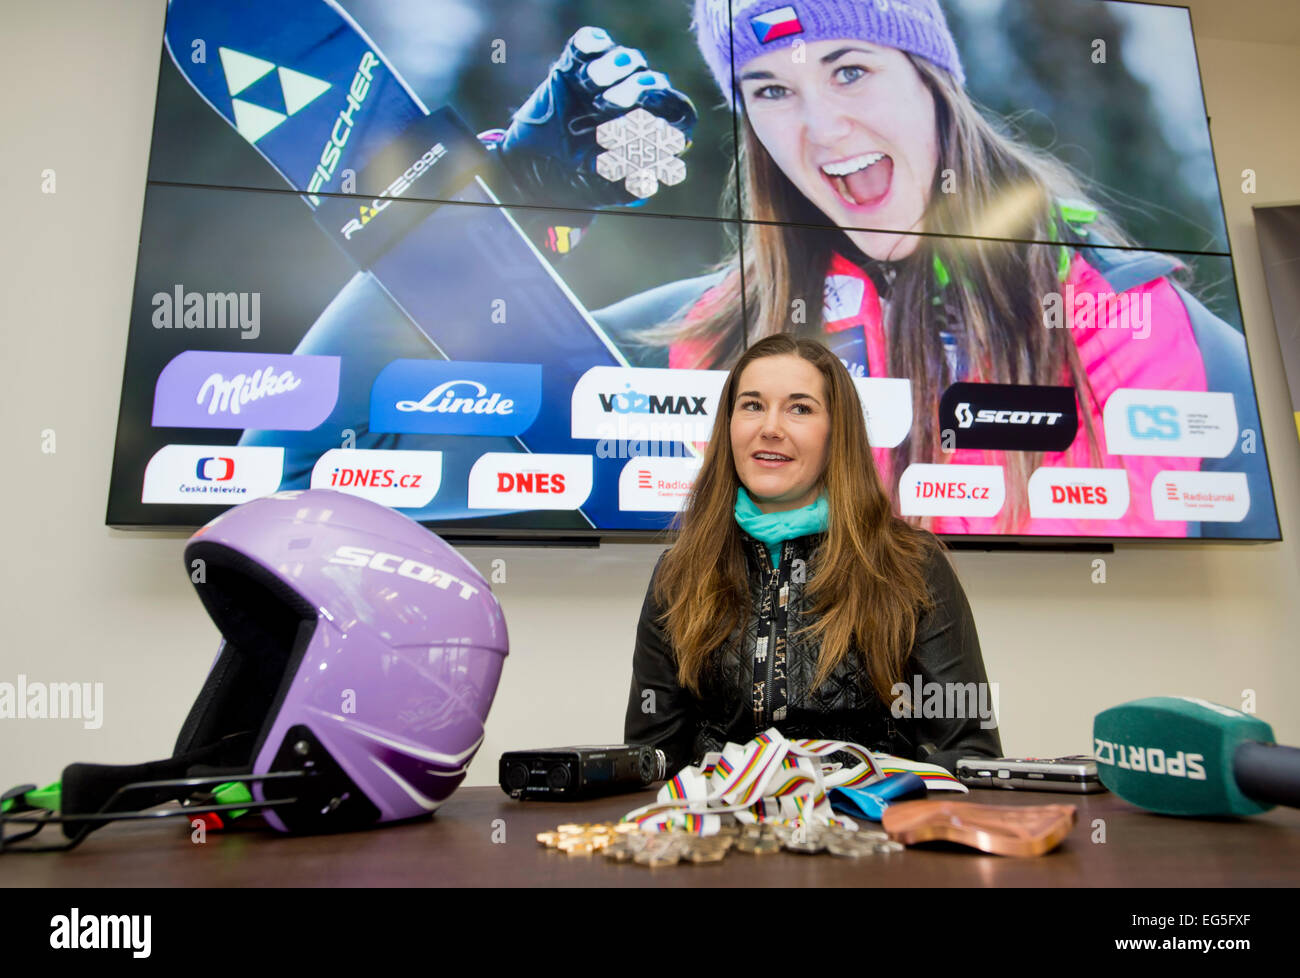 Prague, Czech Republic. 17th Feb, 2015. Czech skier Sarka Strachova who won the third place in the women´s - Stock Image